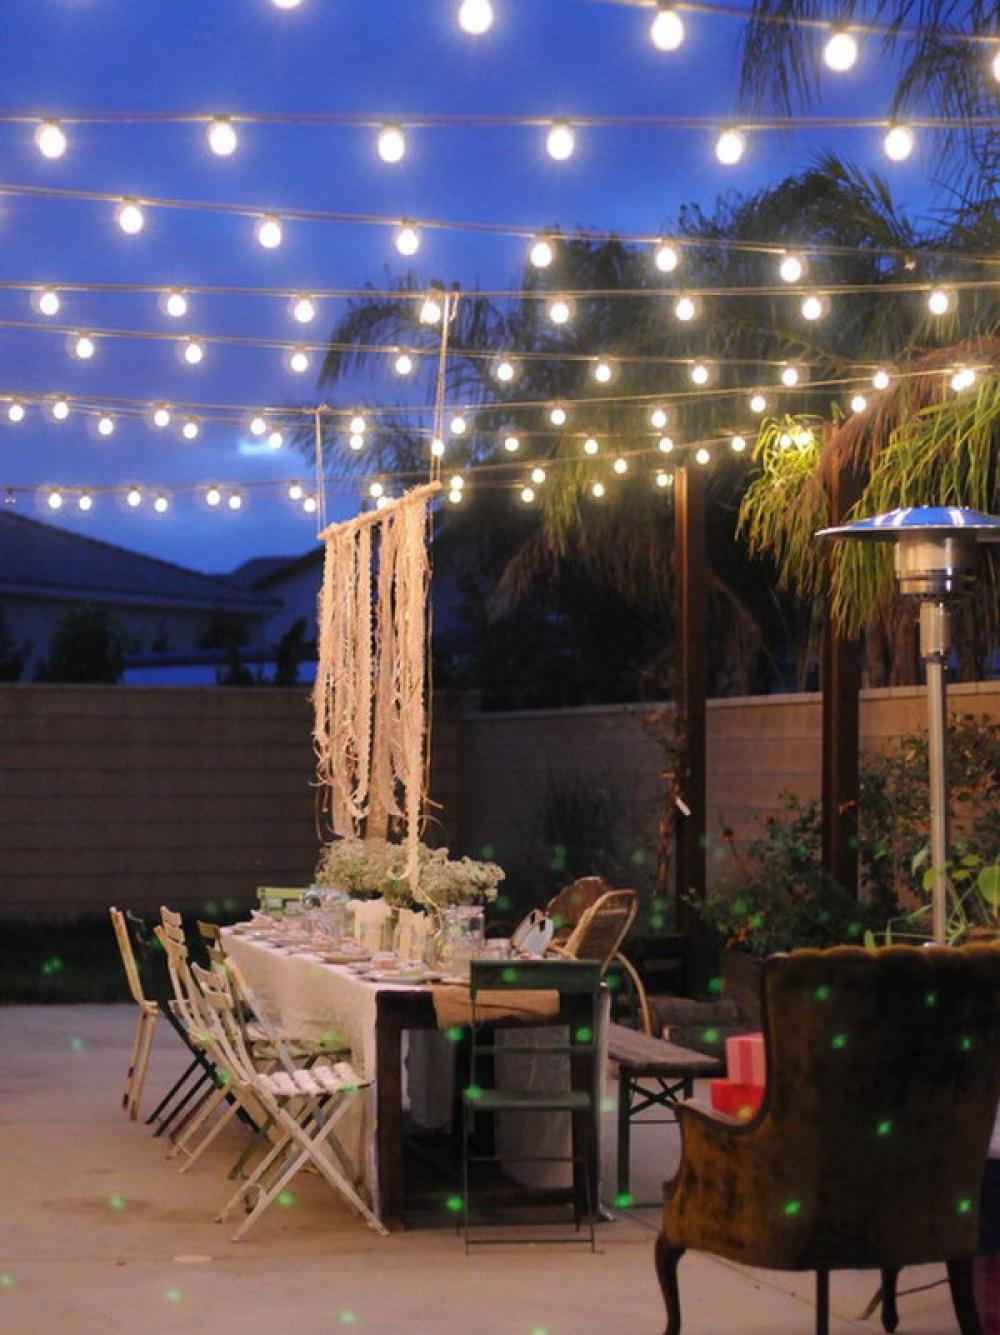 outdoor patio lights patio lights string ideas deck lighting ideas to hang patio lights white ZENCYWL